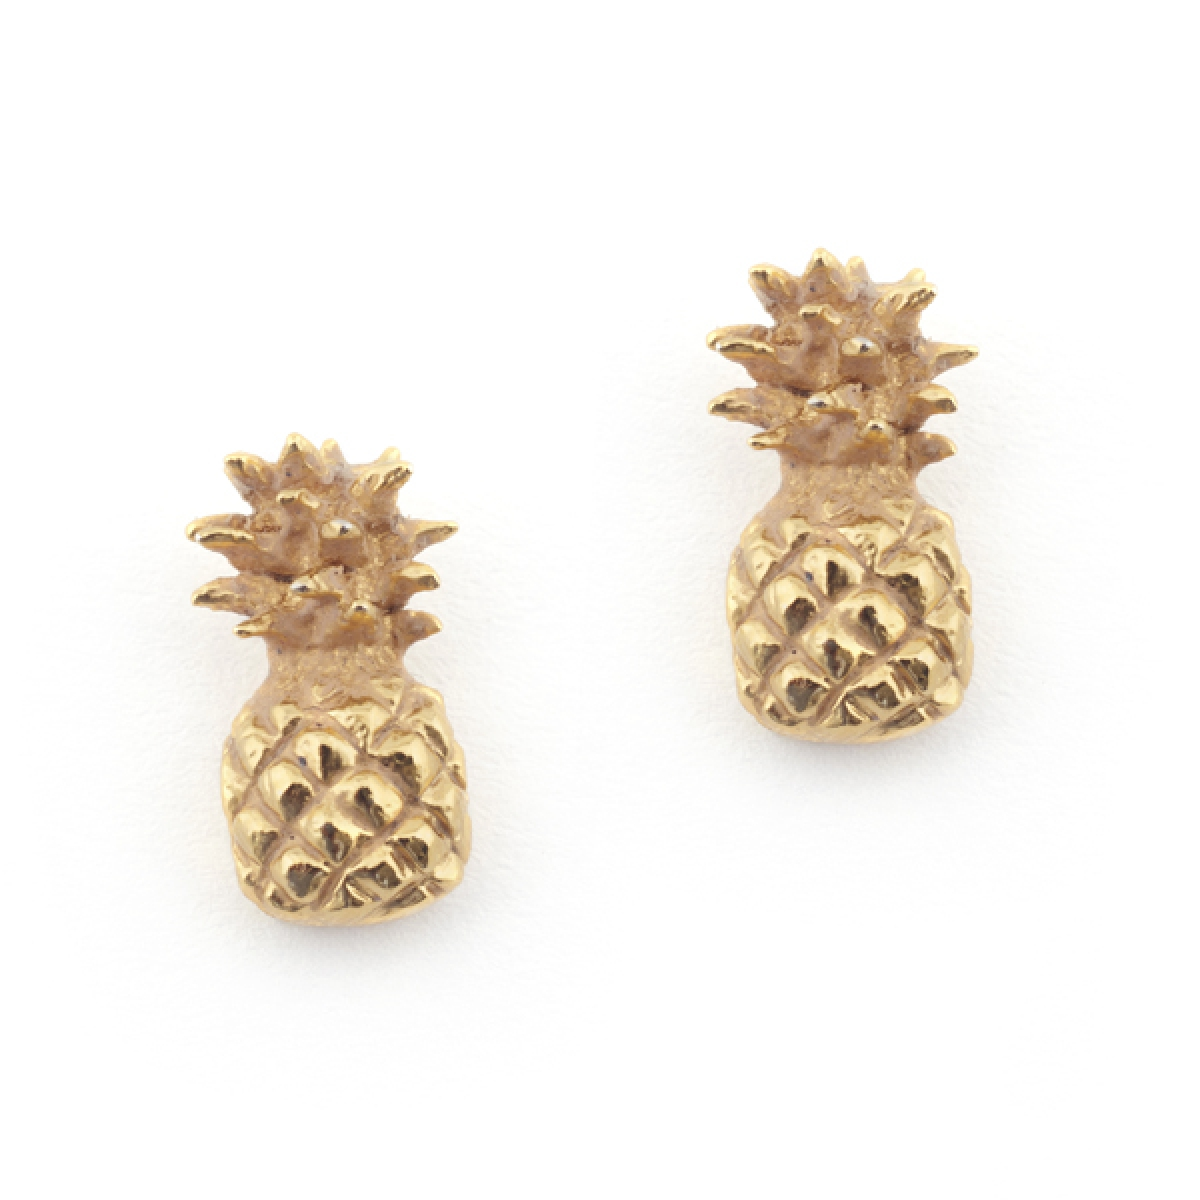 az silver stud sterling kids earrings pineapple pmr bling summer jewelry fruit